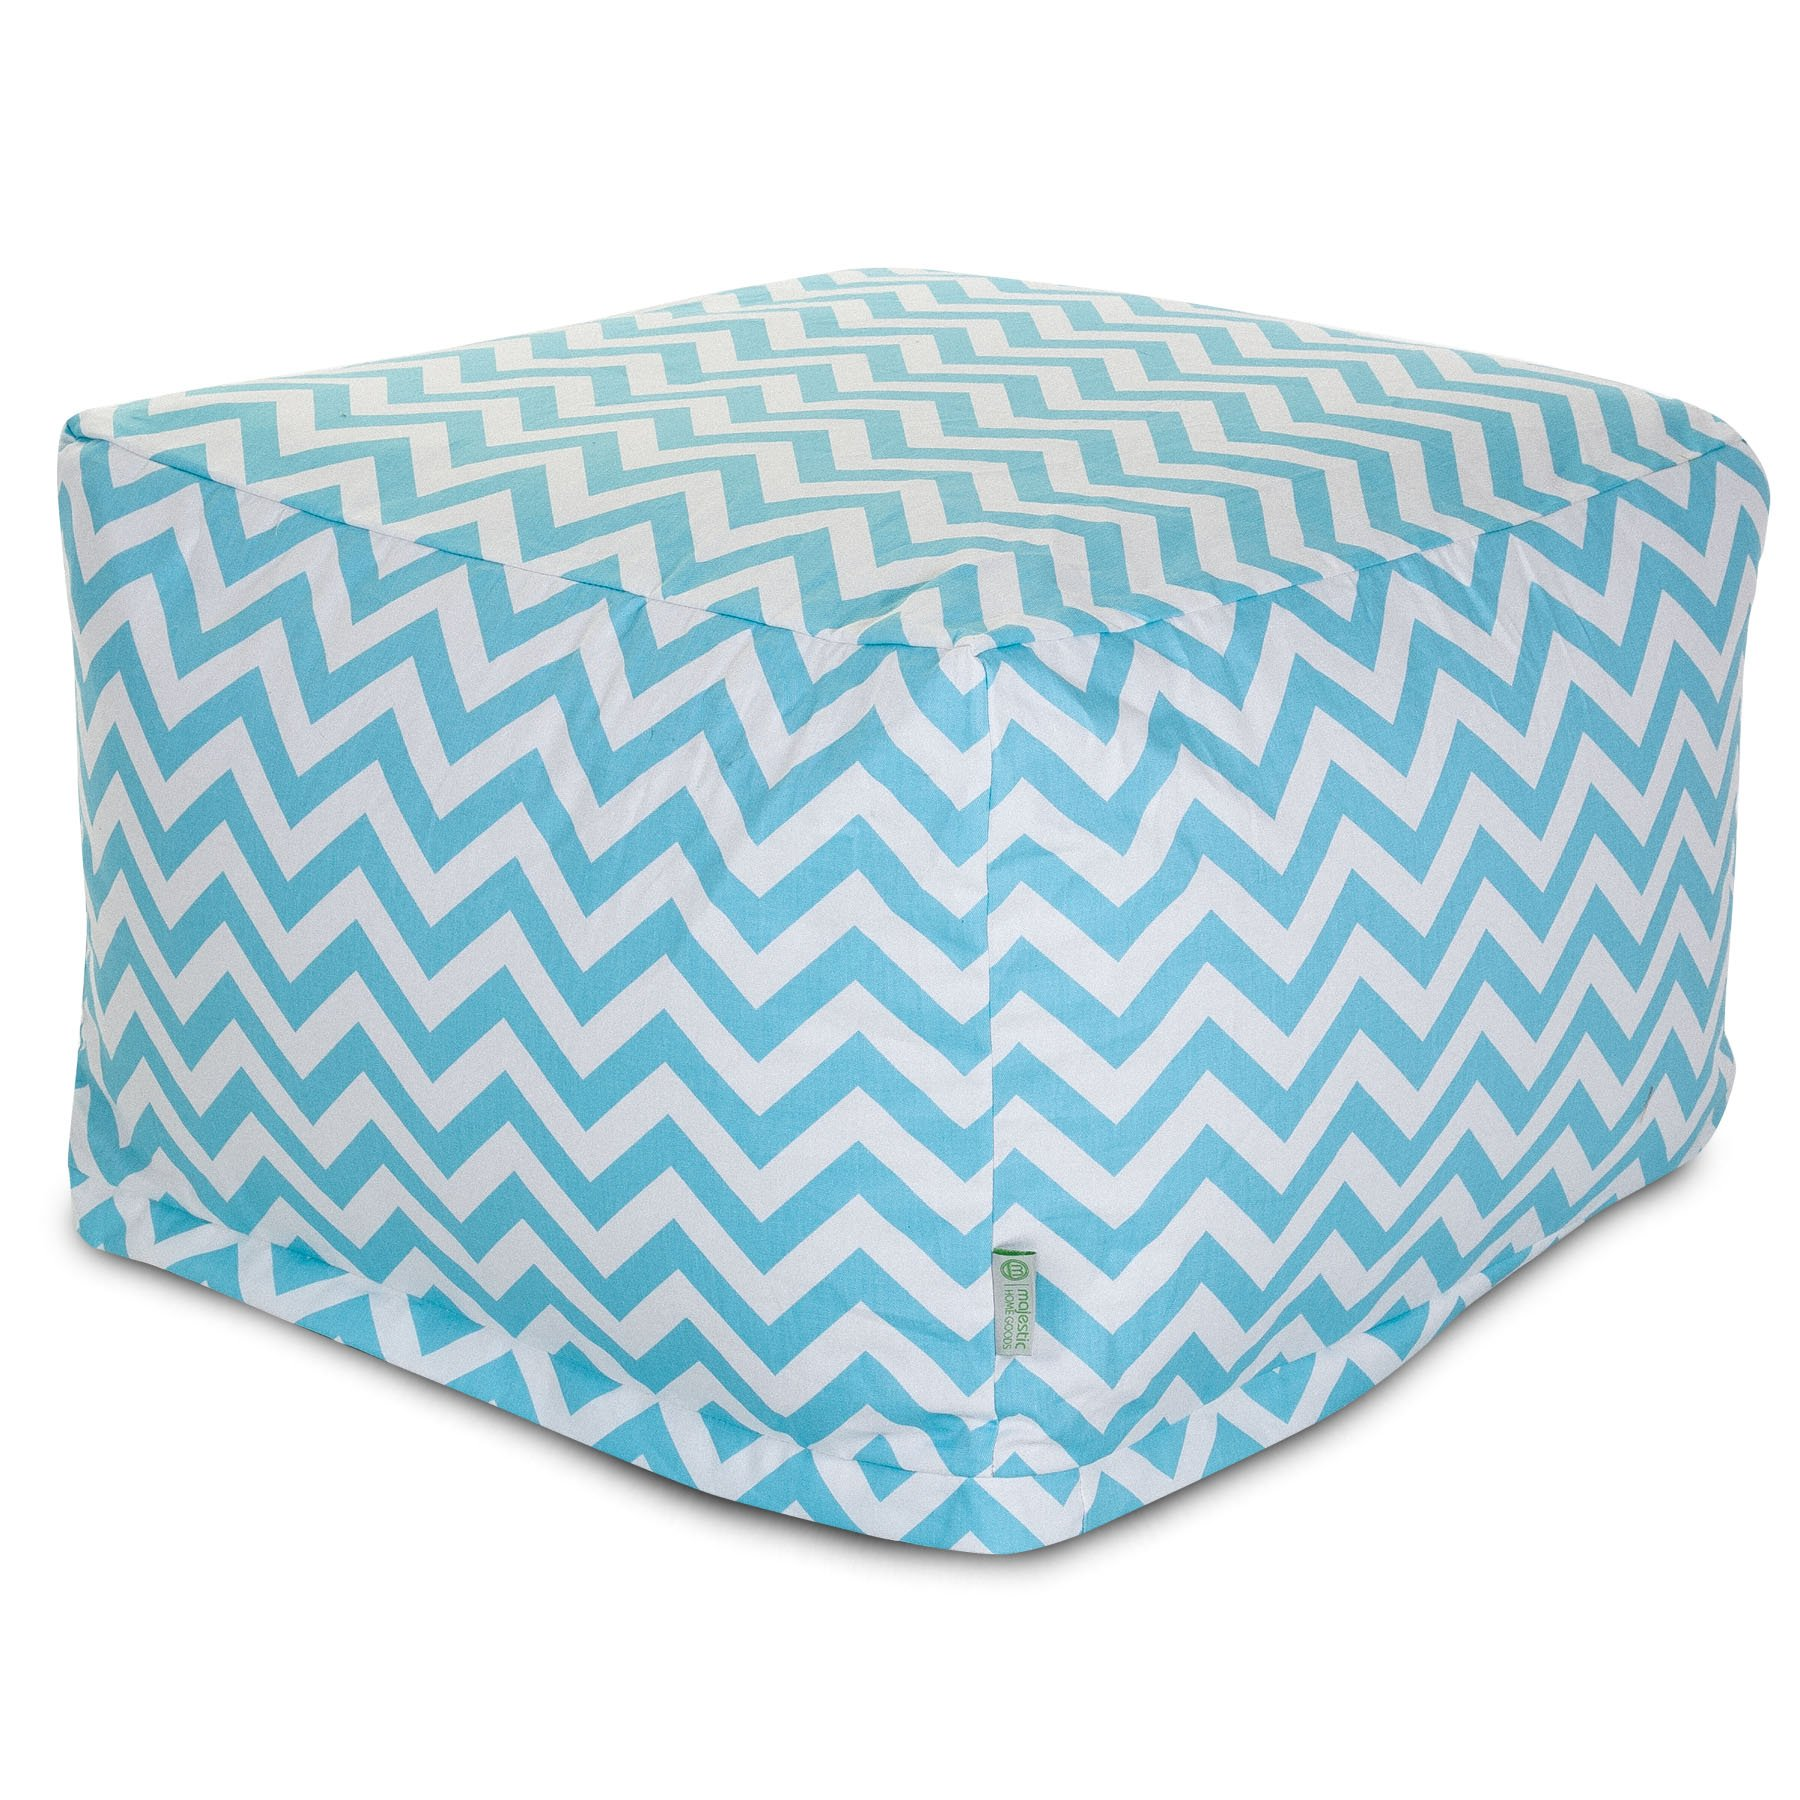 Majestic Home Goods Blue Chevron Large Ottoman